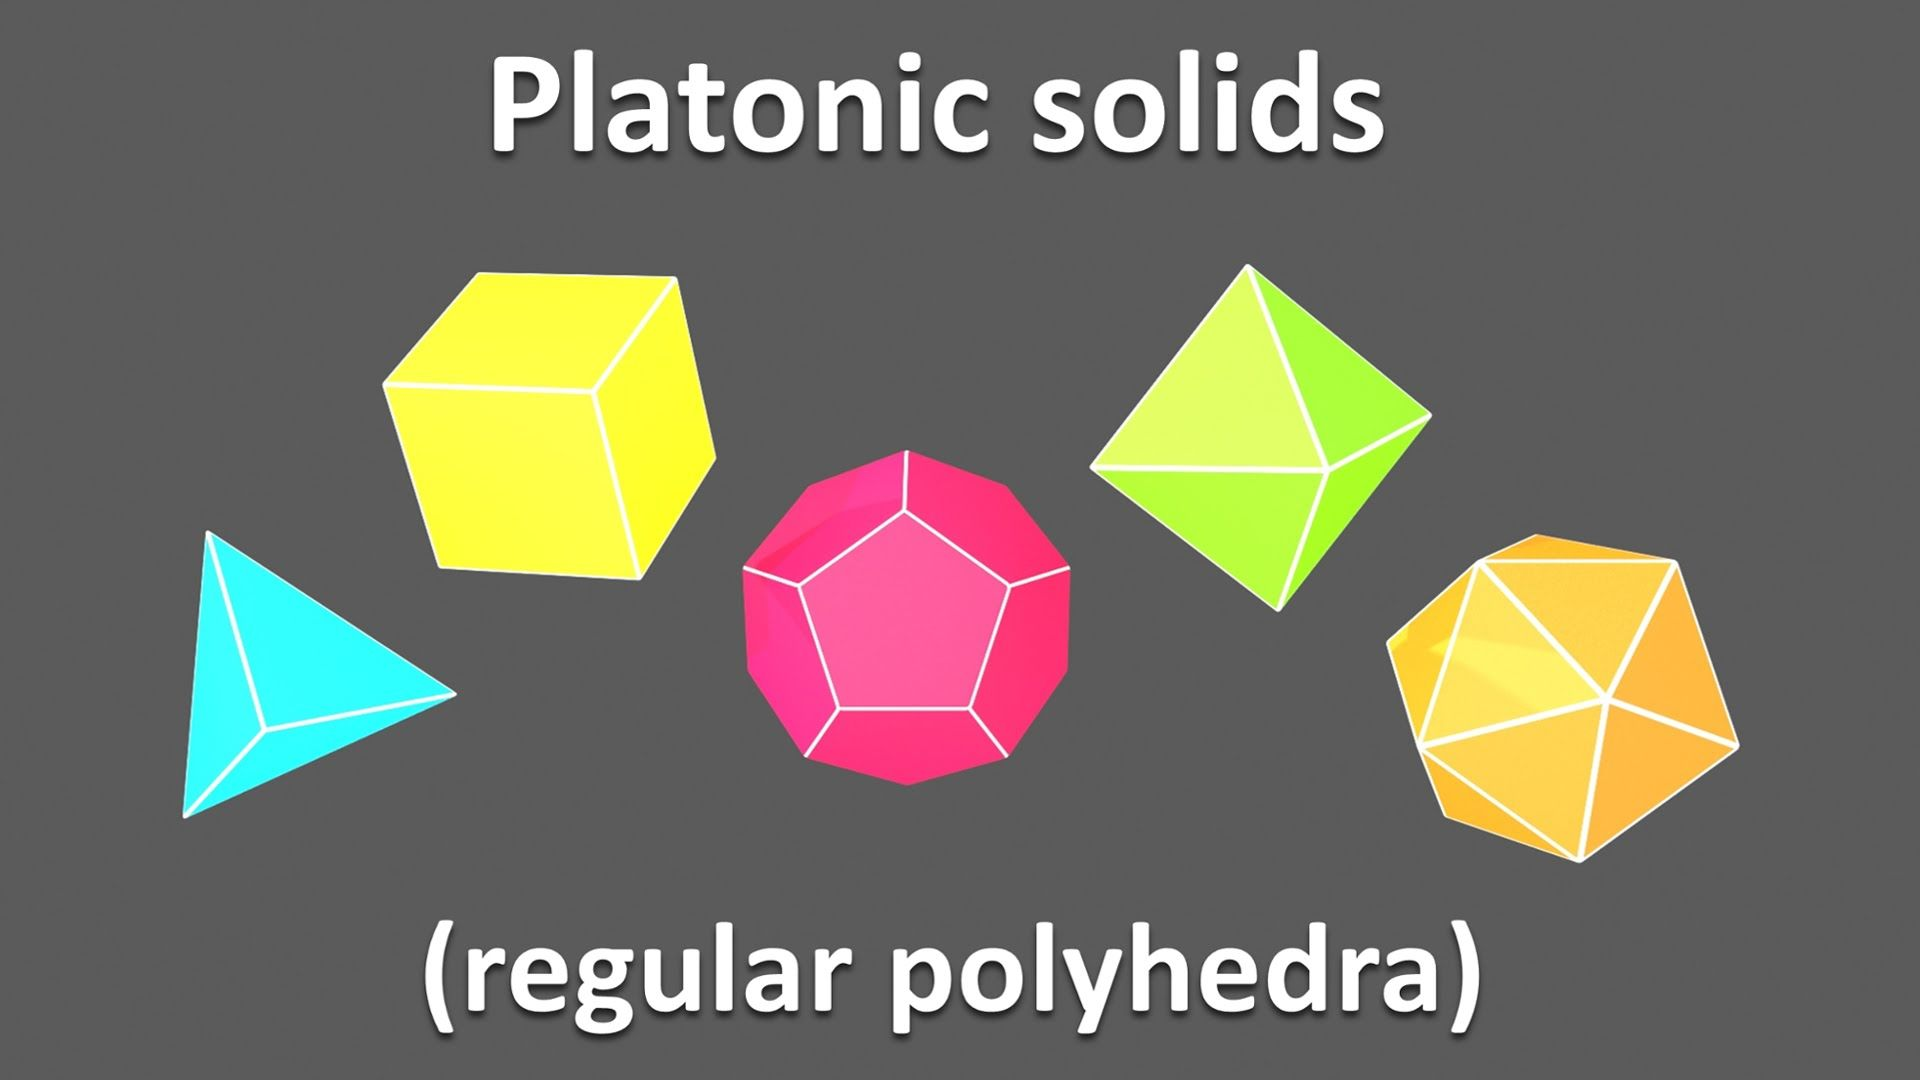 3d Shapes For Kids Children To Learn Platonic Solids Regular Polyhedr 3d Shapes For Kids Shapes For Kids 3d Shapes [ 1080 x 1920 Pixel ]